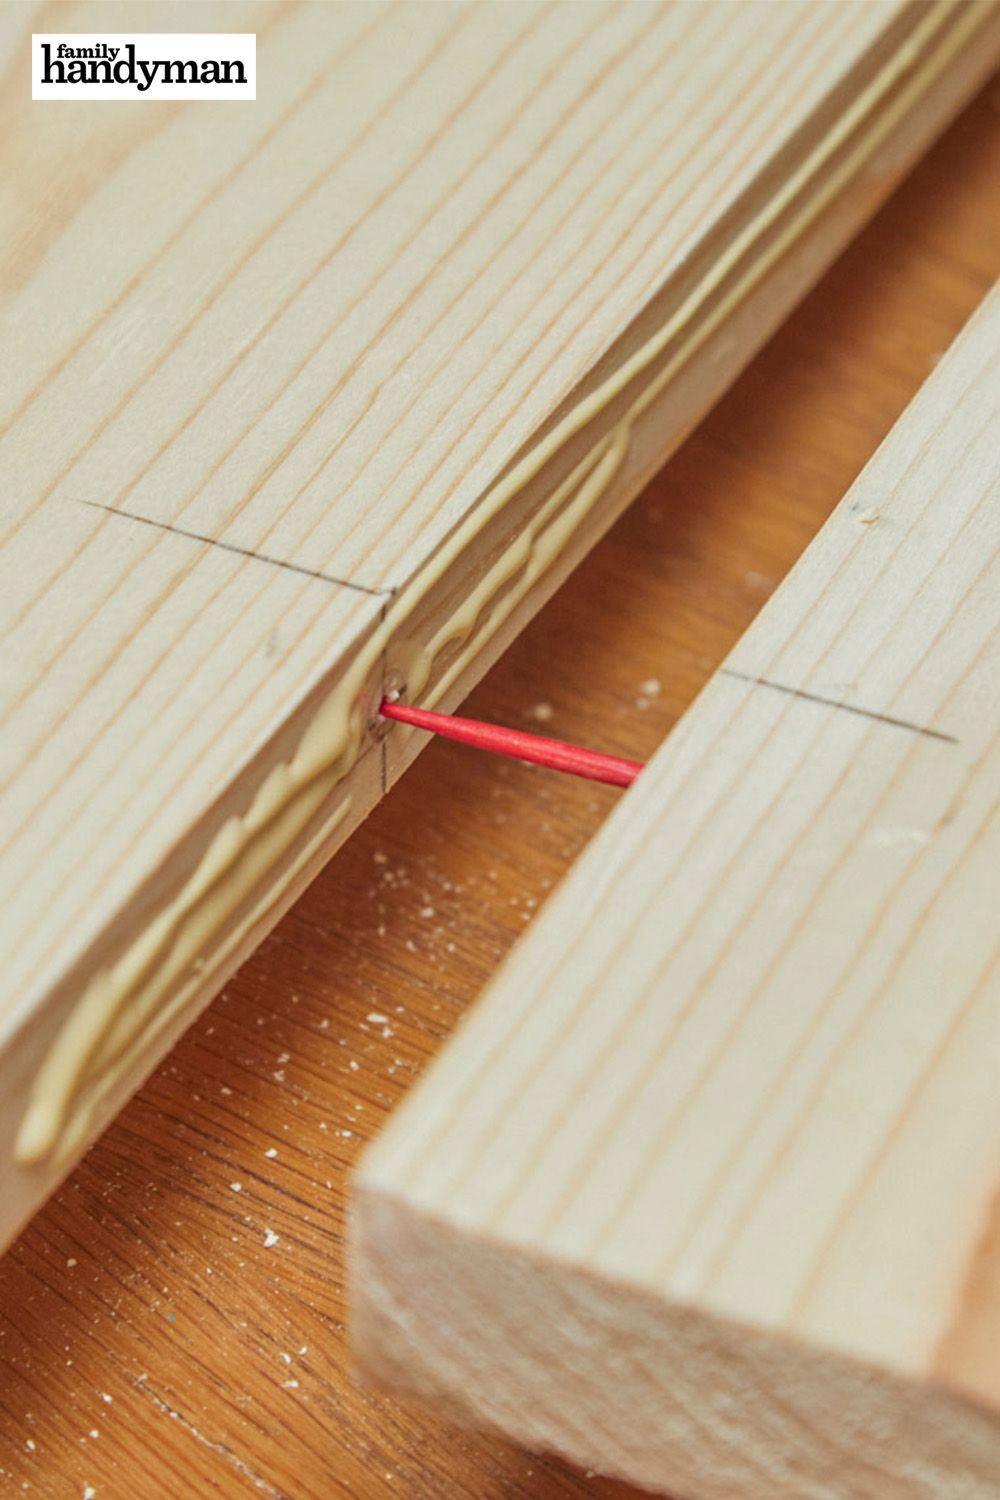 25 Brilliant Uses for Toothpicks in Your Home and